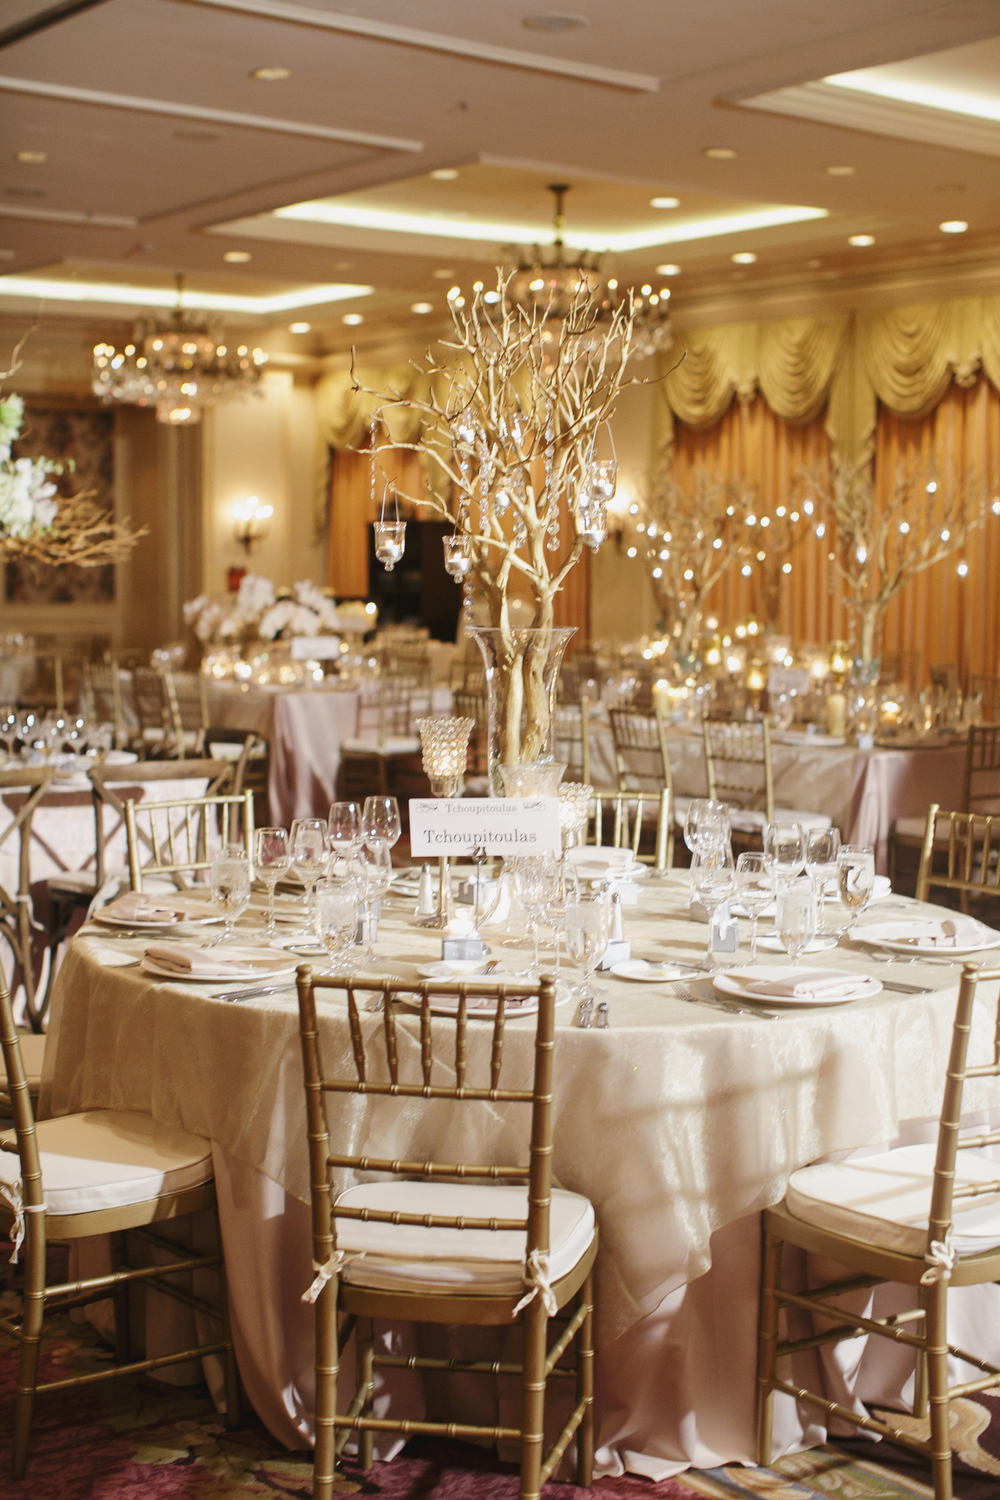 sapphireevents.com | Greer G Photography | New Orleans Weddings at The Ritz Carlton | Sapphire Events Planning and Design